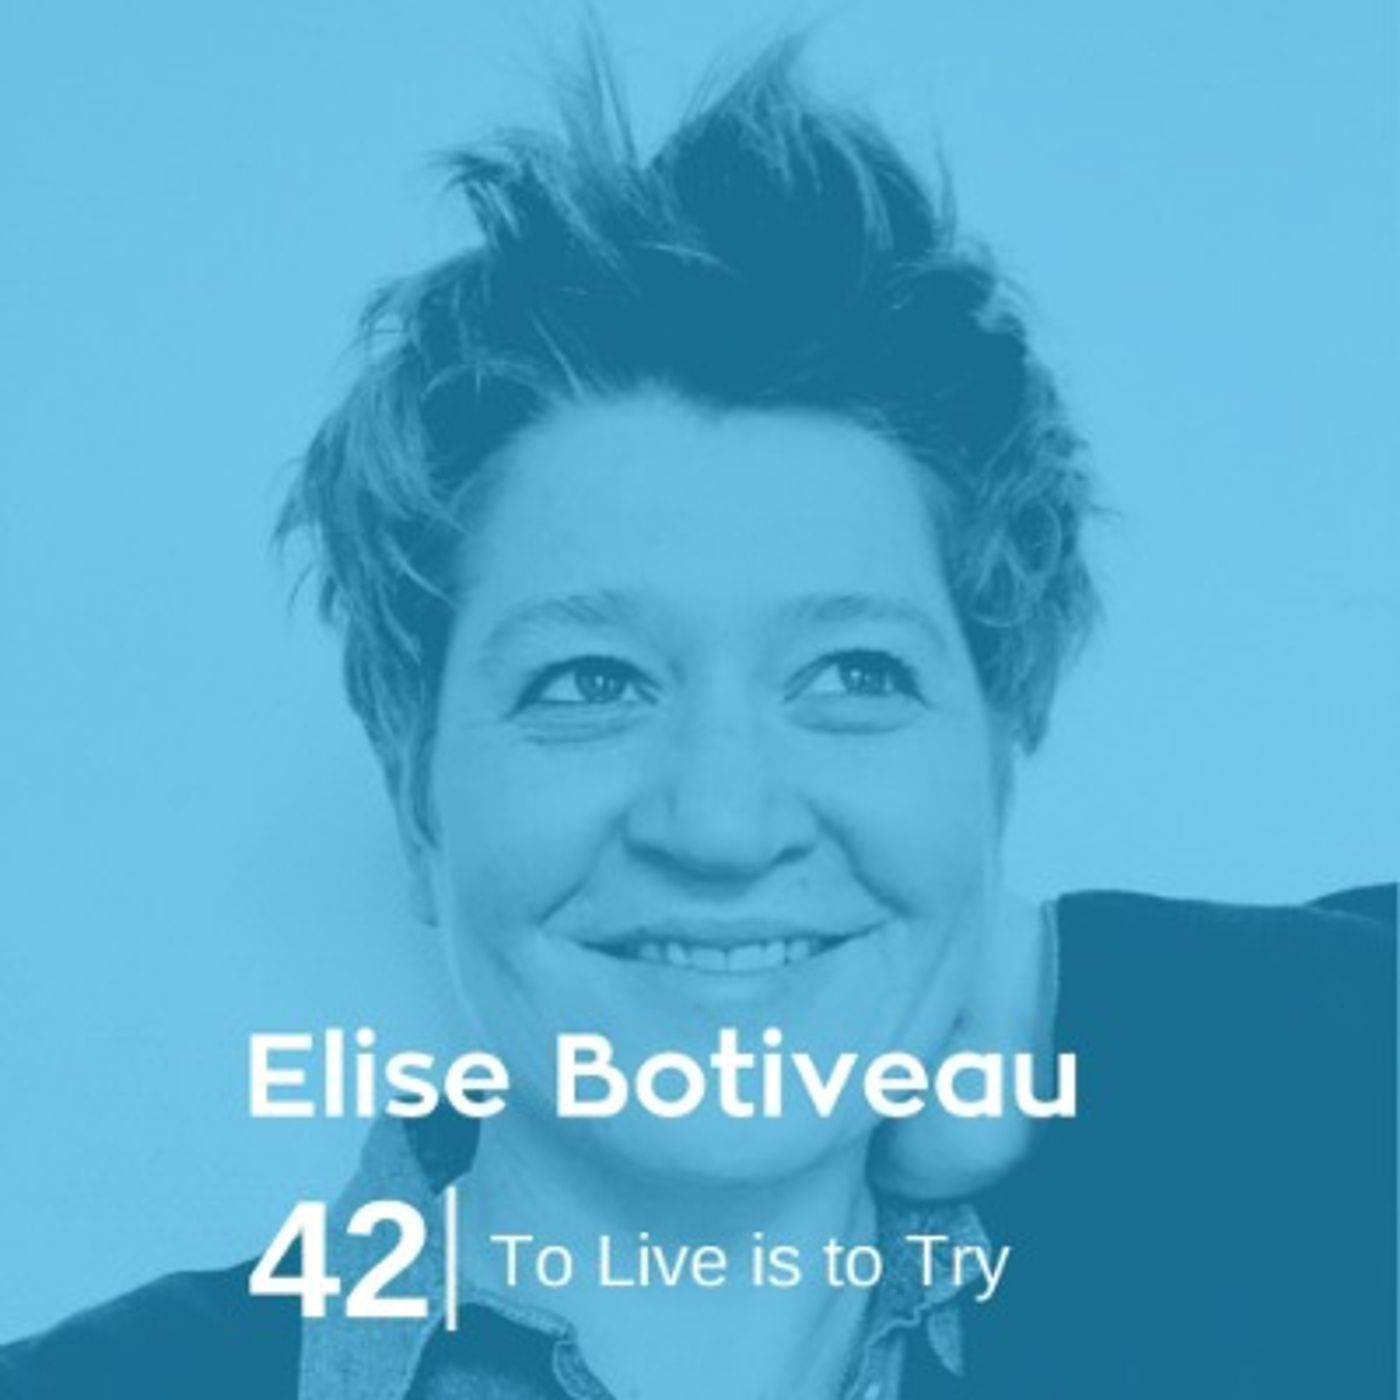 Ep 42. Elise Botiveau - To Live is to Try